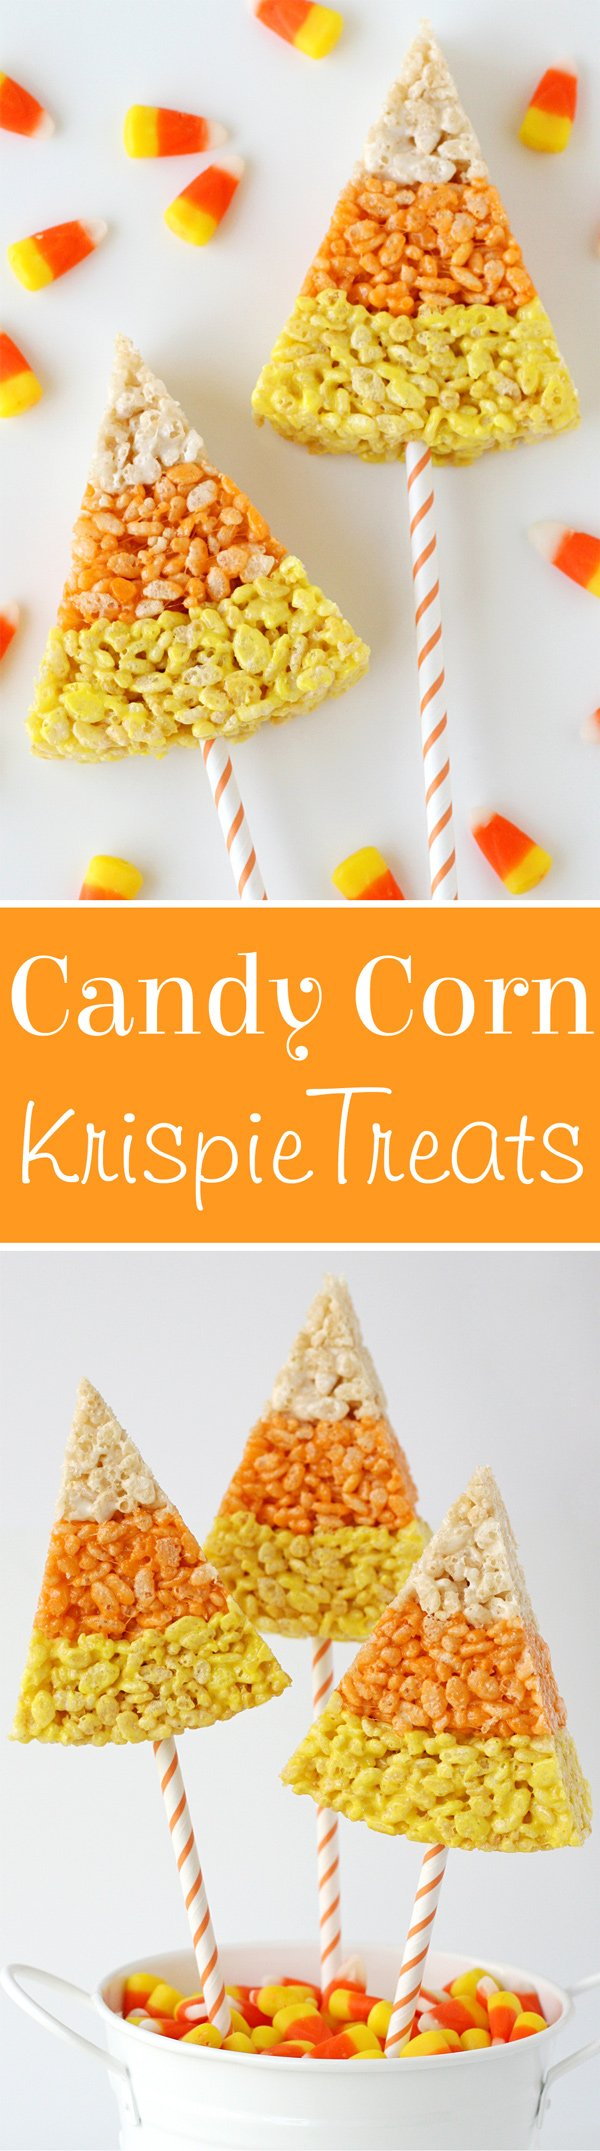 Cute and creative CANDY CORN KRISPIE TREATS!